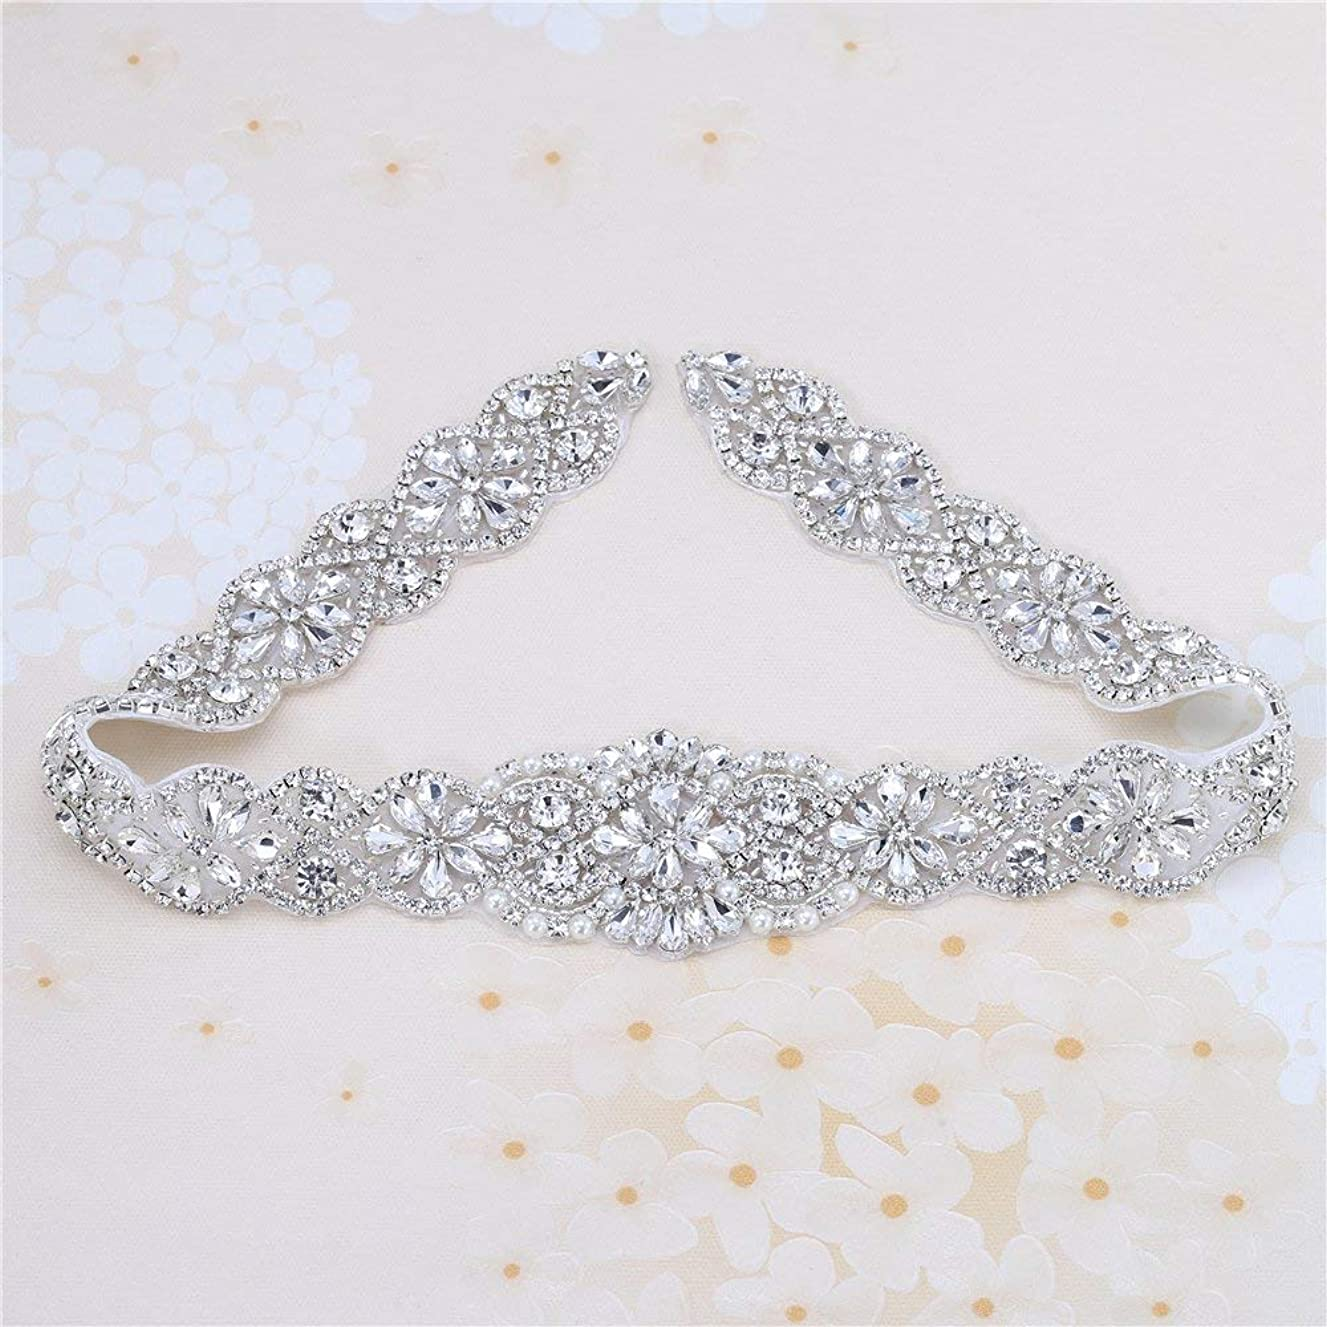 Bridal Rhinestone Appliques, FANGZHIDI 23.4 Inches Silver Beaded Patches with Sparkle Clear Crystal Stone and Pearls- Best for DIY on Wedding Dress, Sew on or Iron on Bridal Belt Sash, Wedding Cake